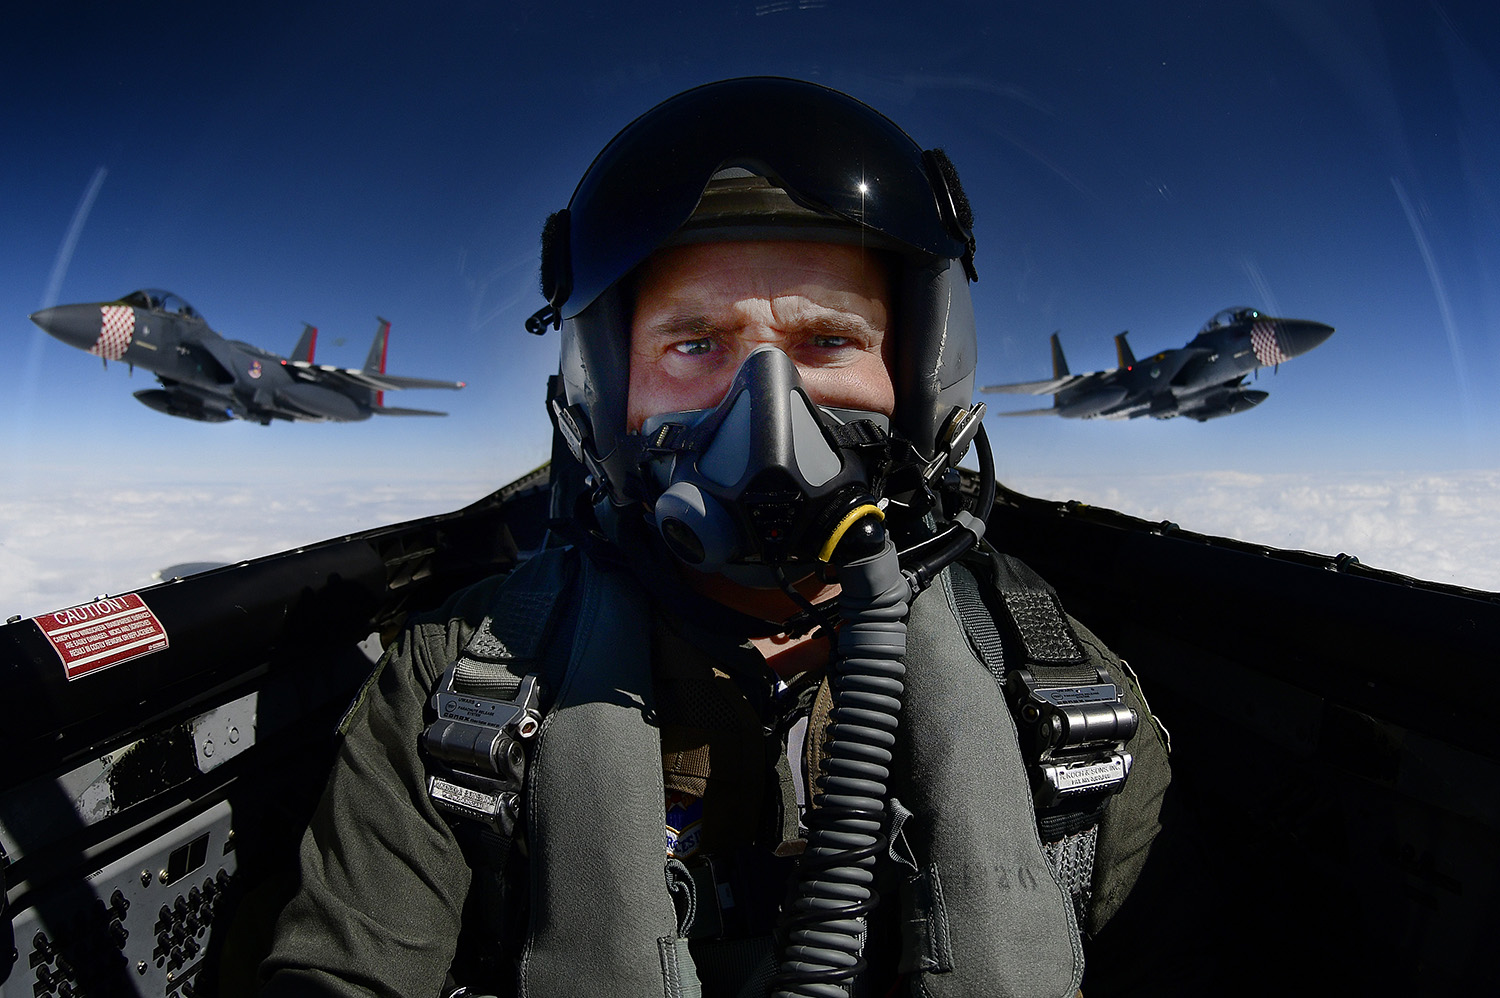 Tech. Sgt. Matthew Plew, 48th Fighter Wing Public Affairs photojournalist, takes a selfie while documenting two F-15E Strike Eagles and an F-15C Eagle conducting aerial maneuvers over southern England, Sept. 3, 2019. (Tech. Sgt. Matthew Plew/Air Force)